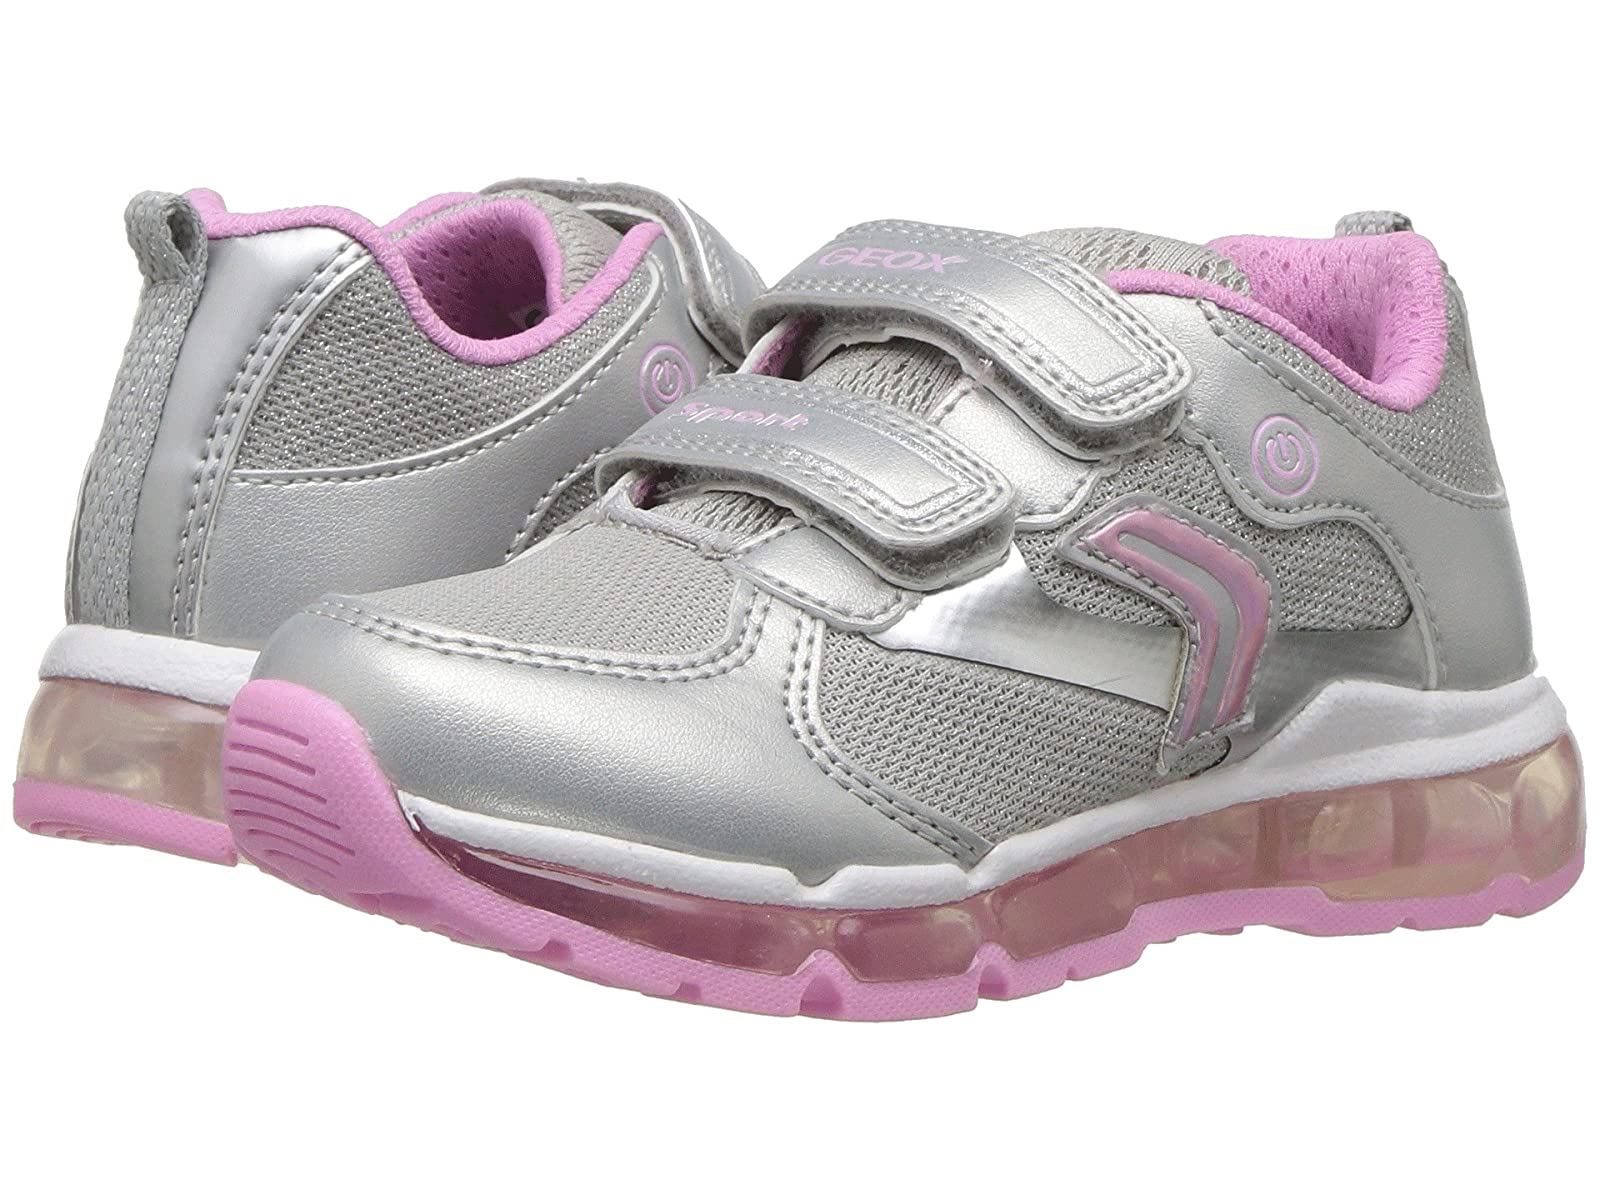 Geox Kids Android 14 (Toddler/Little Kid)Atmospheric grades have affordable shoes